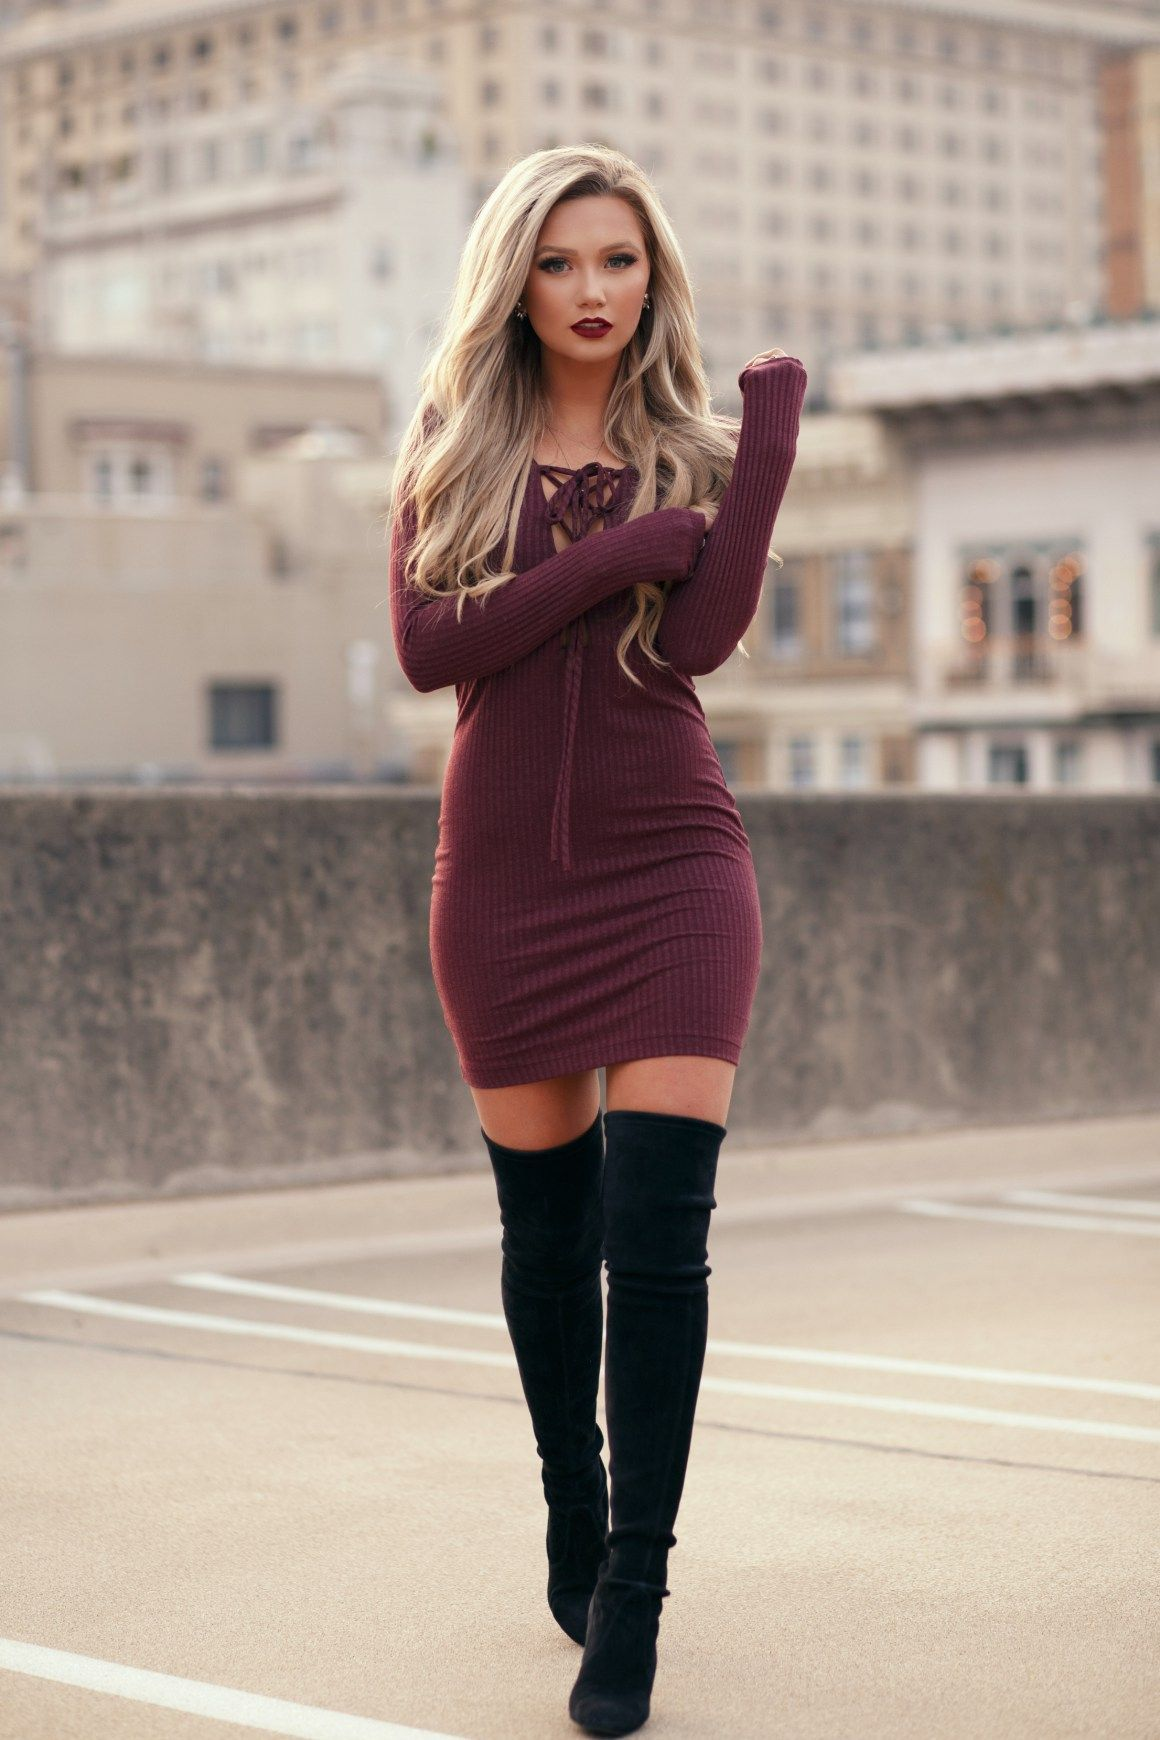 Bdress fashion days in pinterest boots high heels and